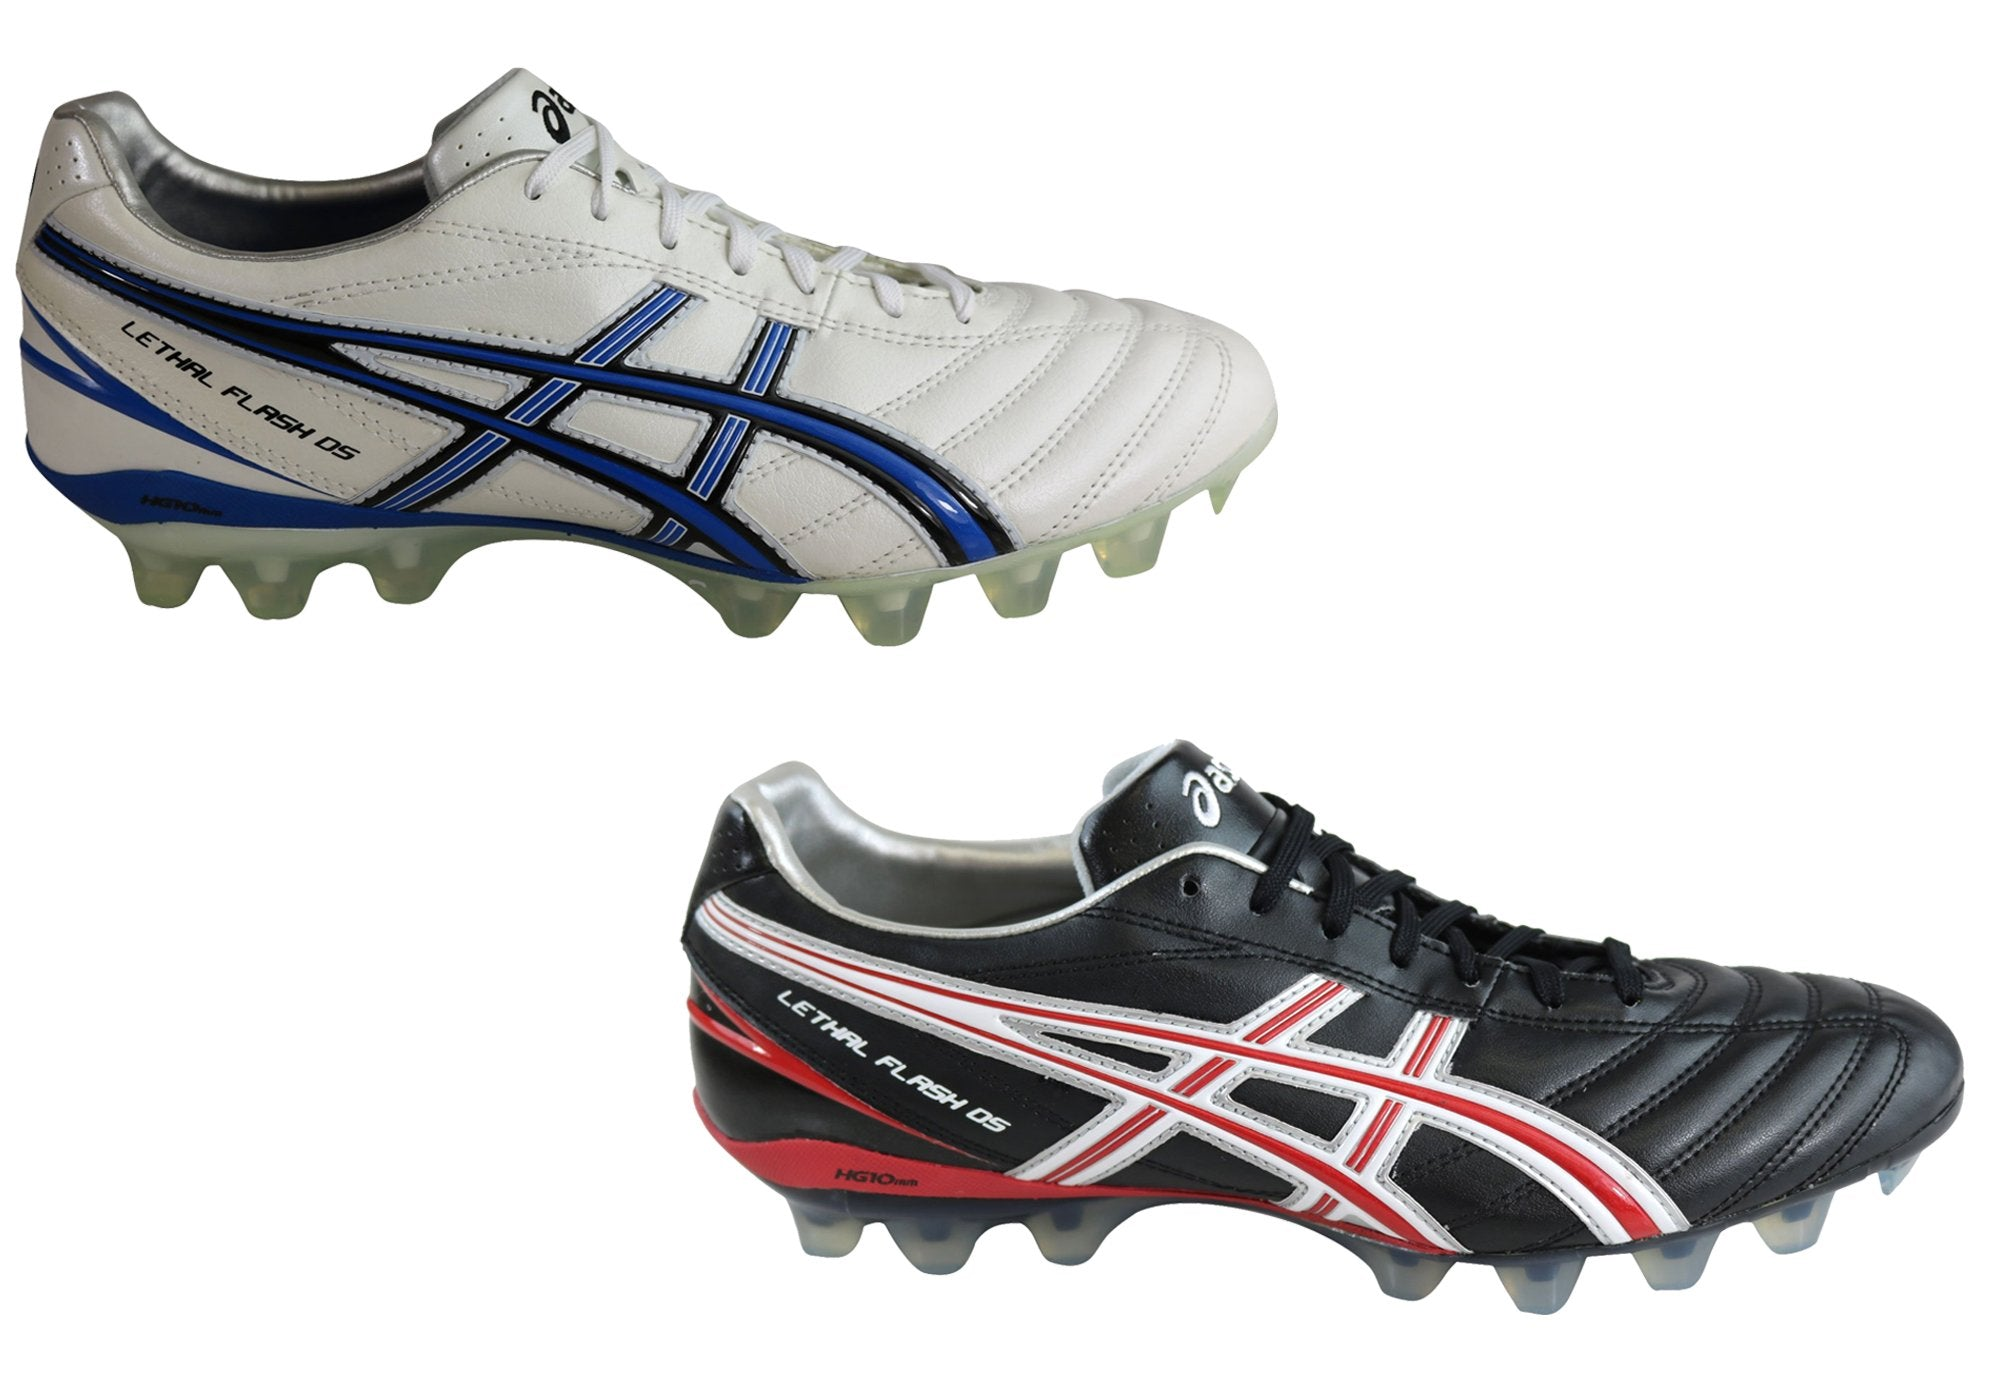 Asics Mens Lethal Flash Ds IT Moulded Sole Football Soccer